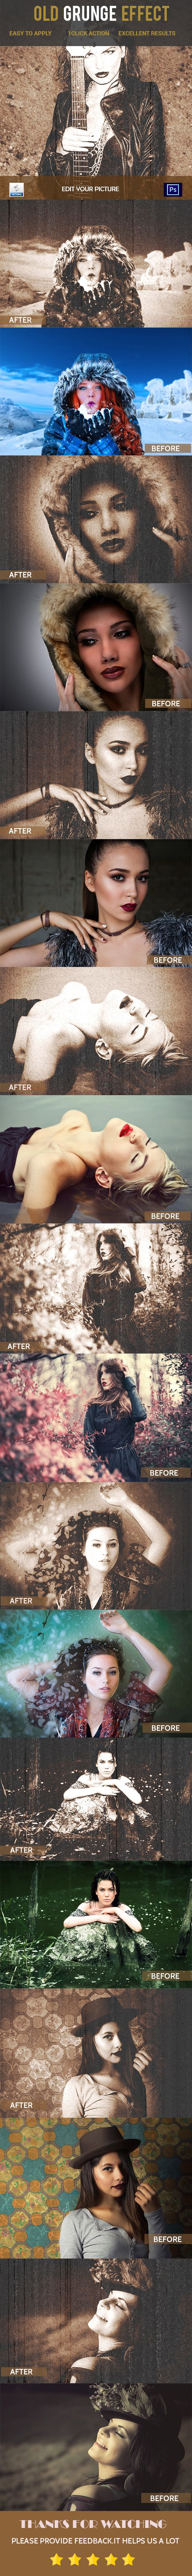 Old Grunge #Photoshop Action - Photo Effects #Actions Download here: https://graphicriver.net/item/old-grunge-photoshop-action/19682910?ref=alena994